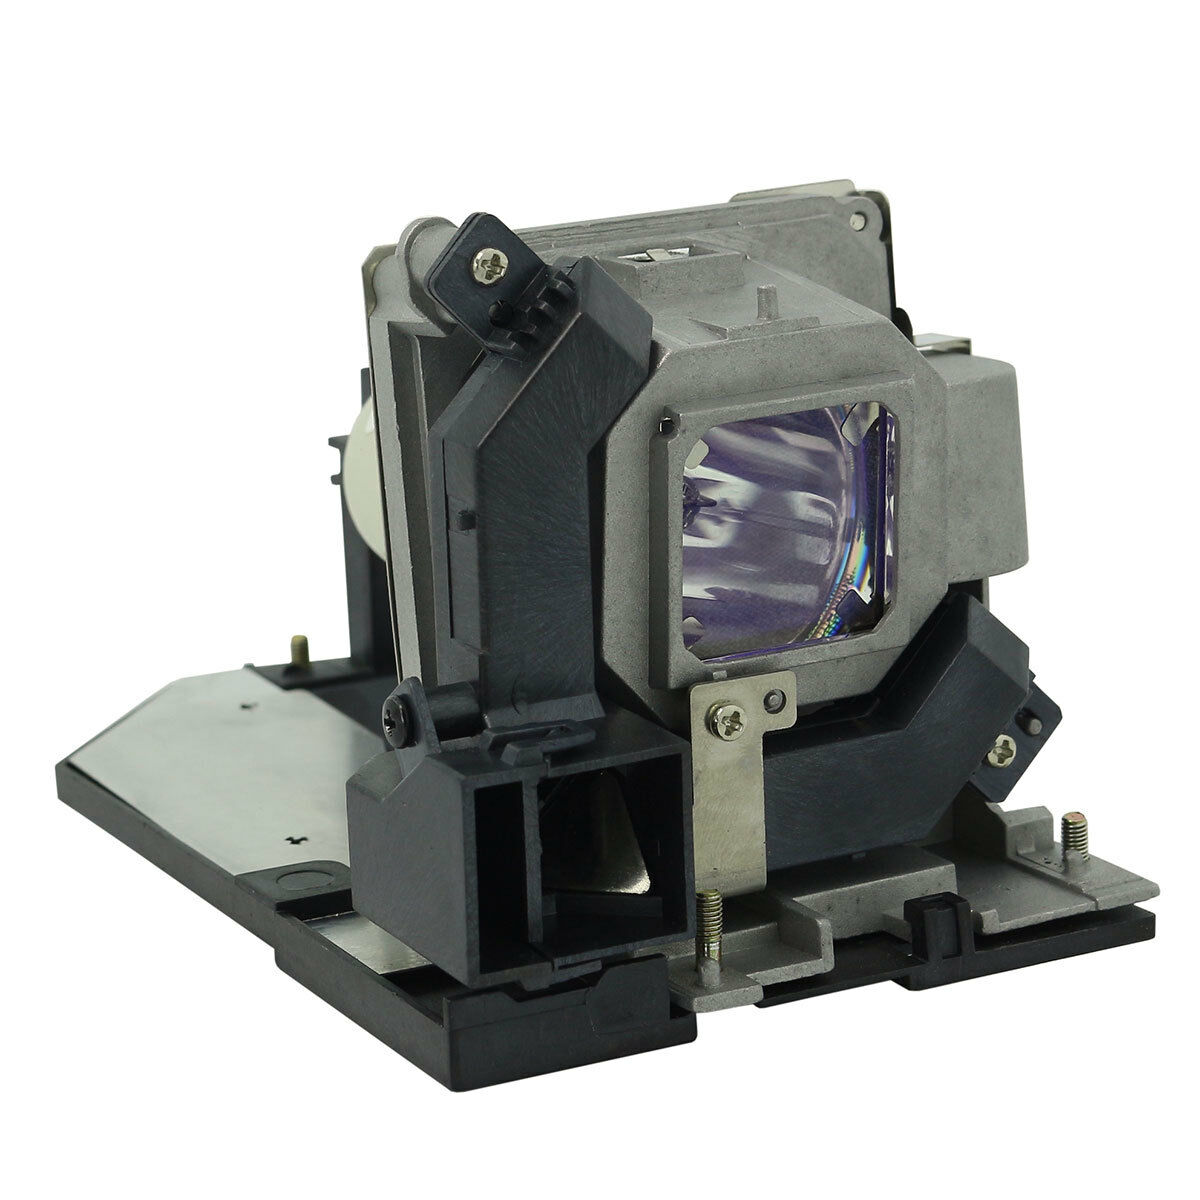 Philips Bulb Inside XpertMall Replacement Lamp Housing NEC PX800X